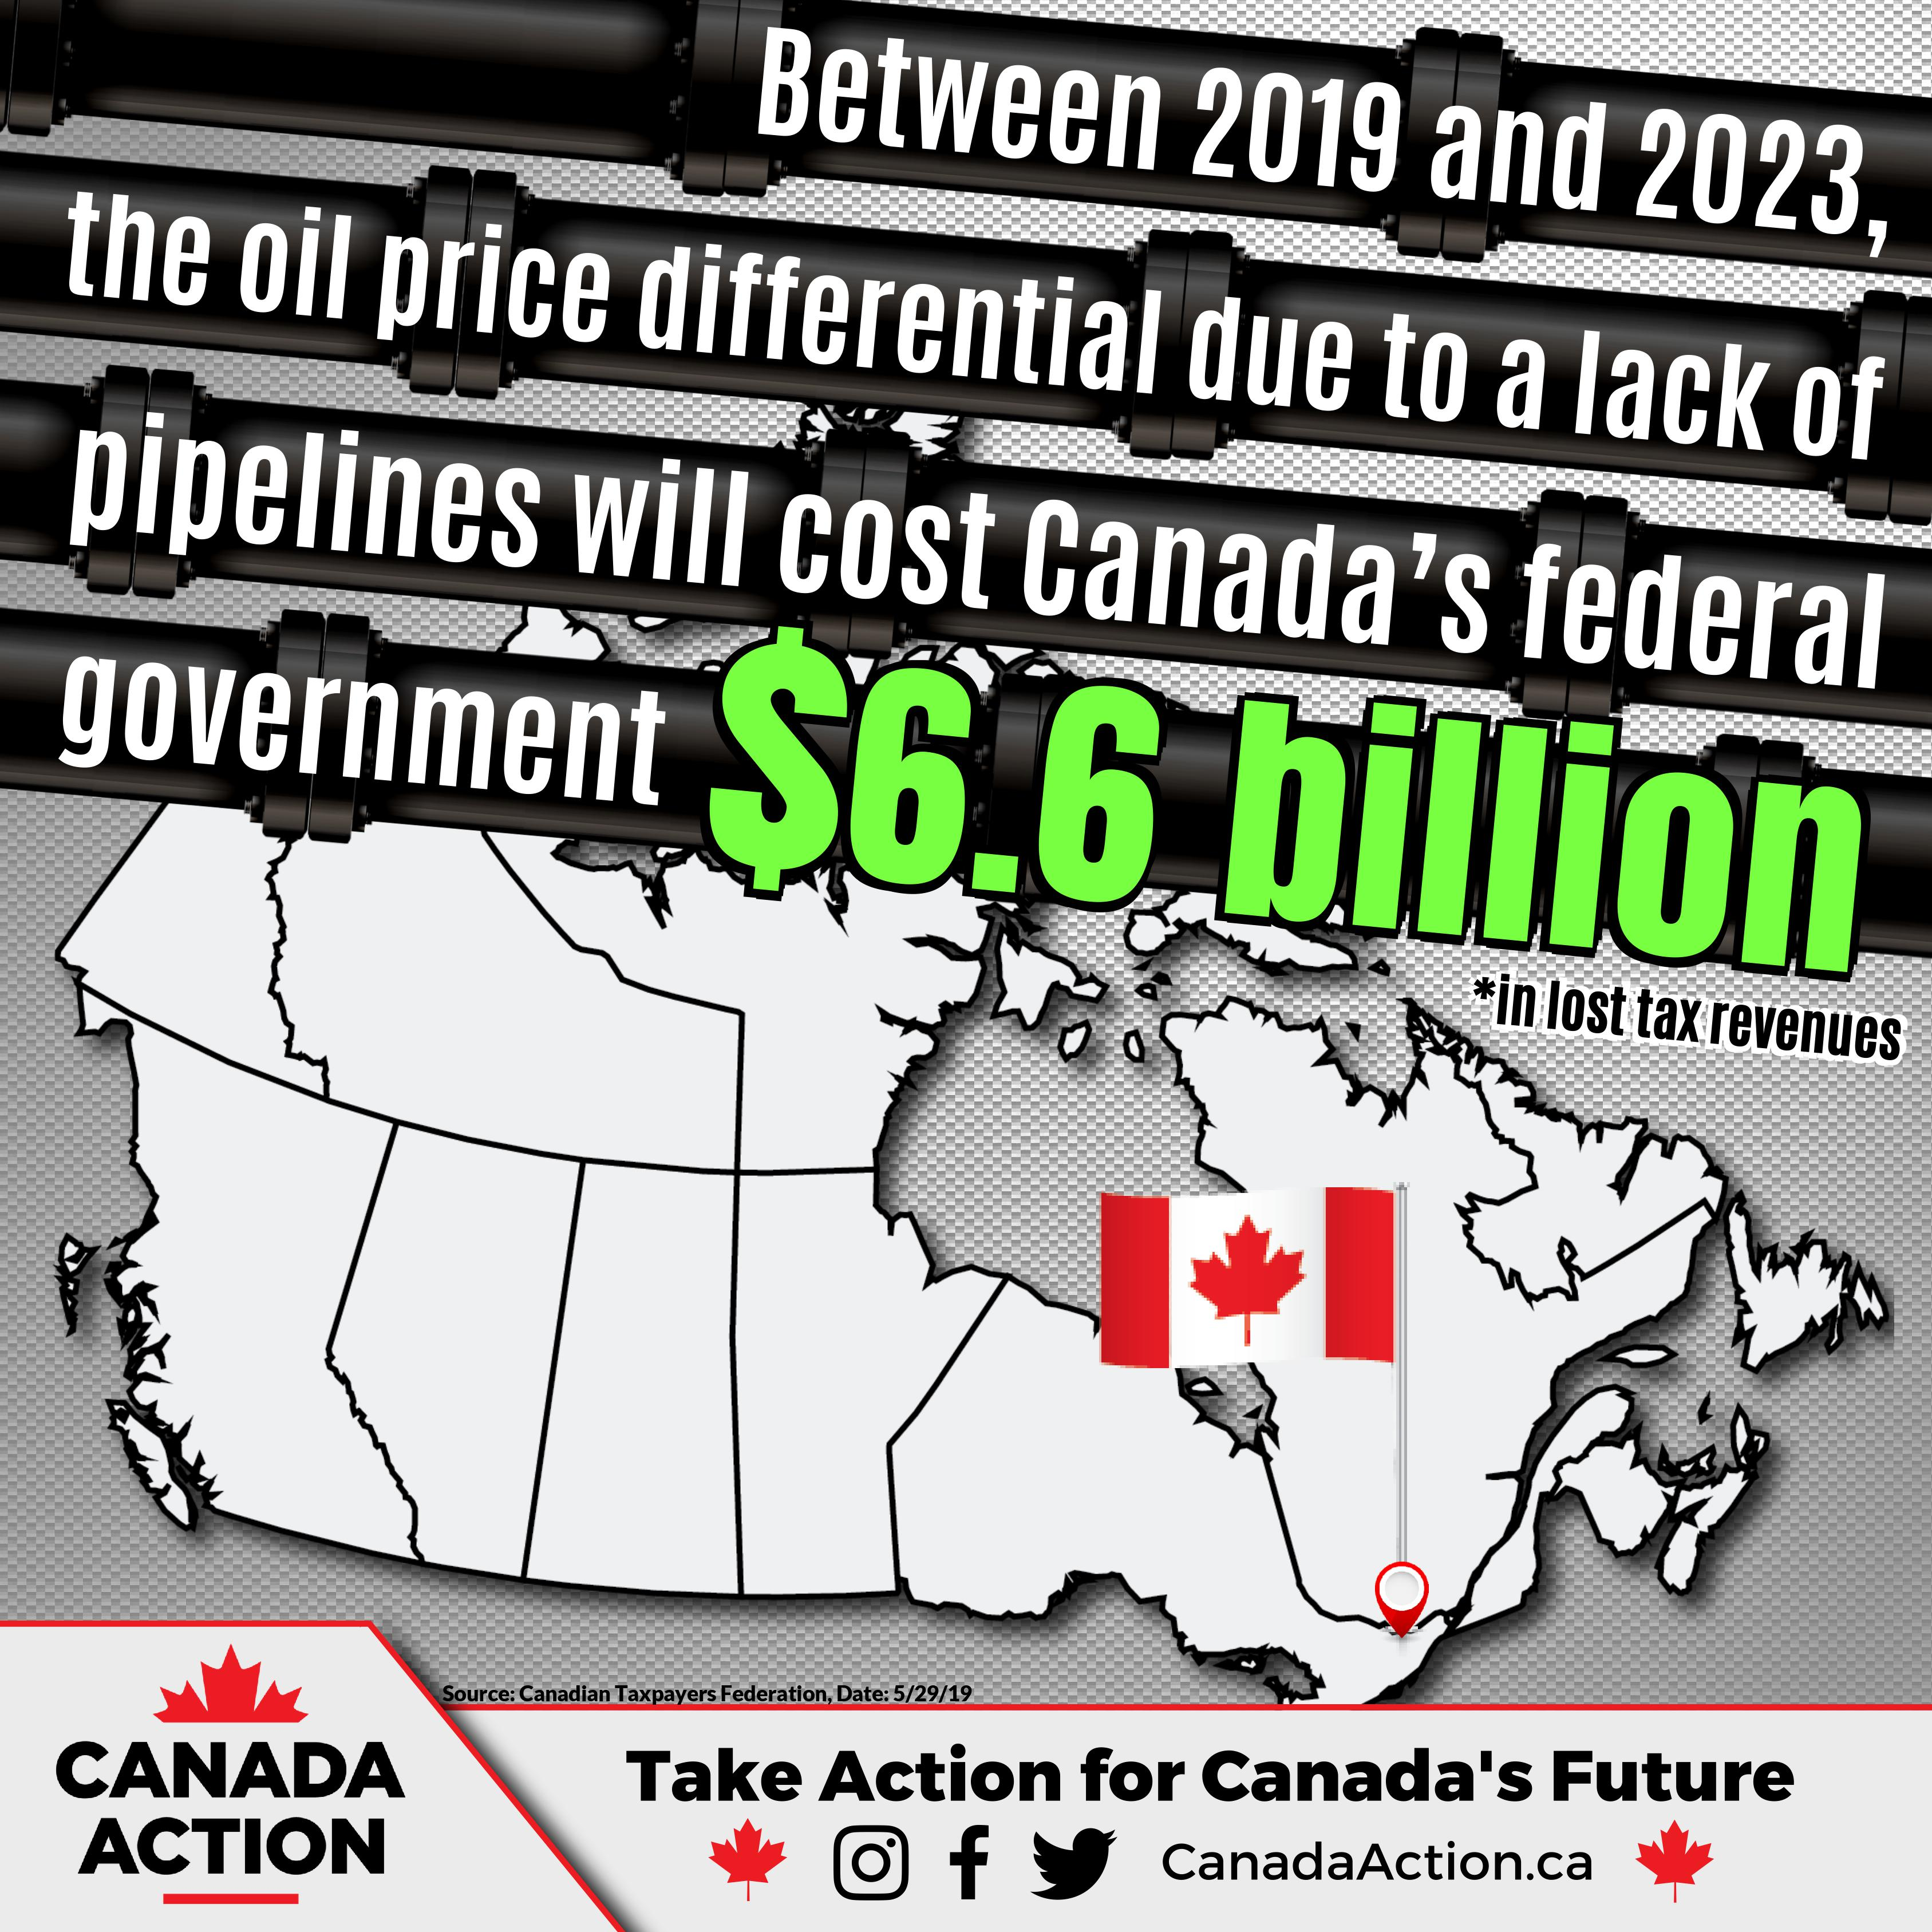 oil price discount foregone revenues federal government canada 2019-2023